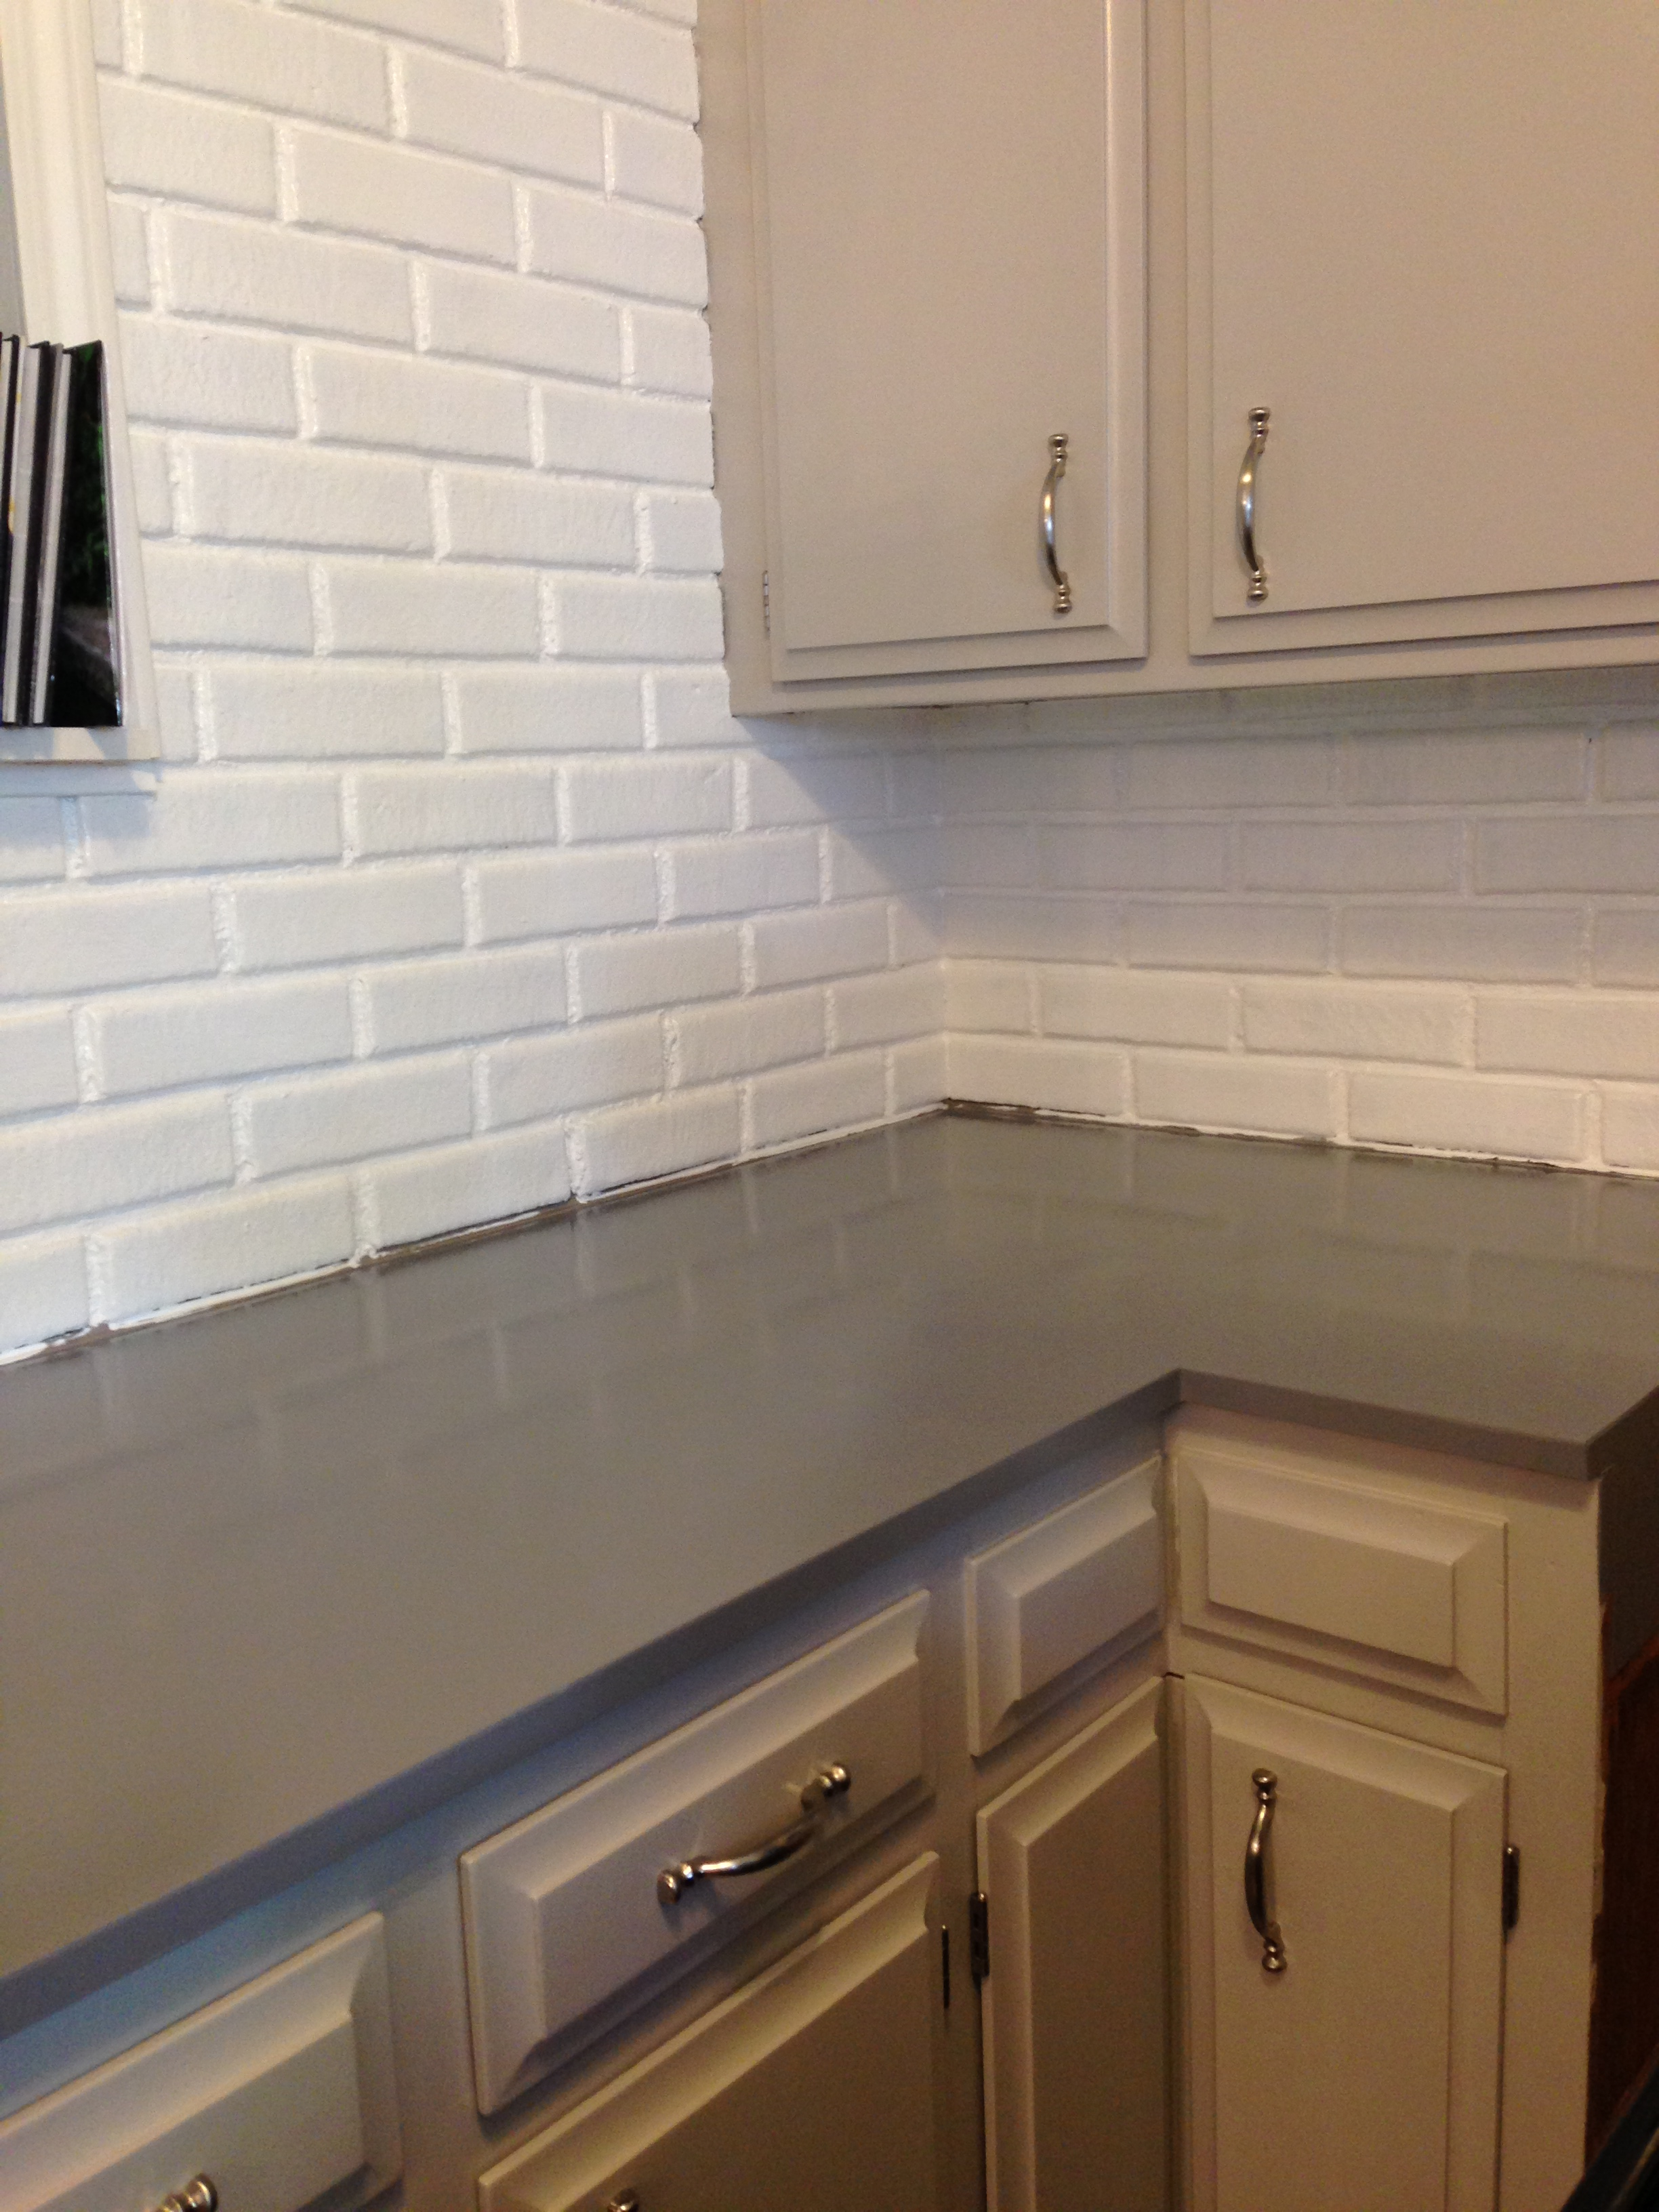 Rustoleum Countertop Paint Smell : July 2013 Tashia Doyle